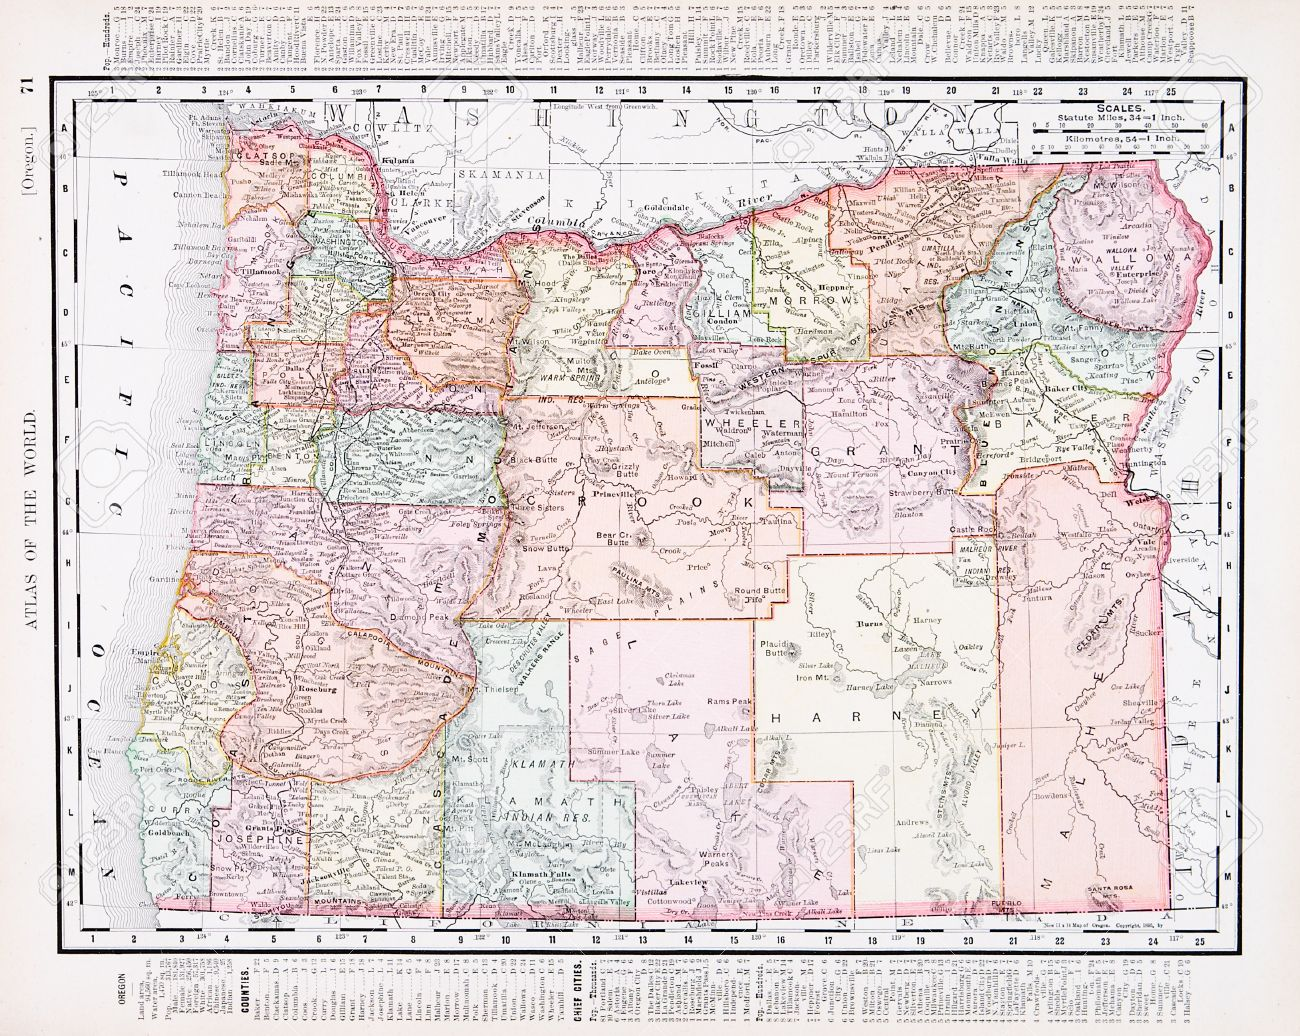 Vintage Map Of The State Of Oregon United States Stock - Map of the state of oregon